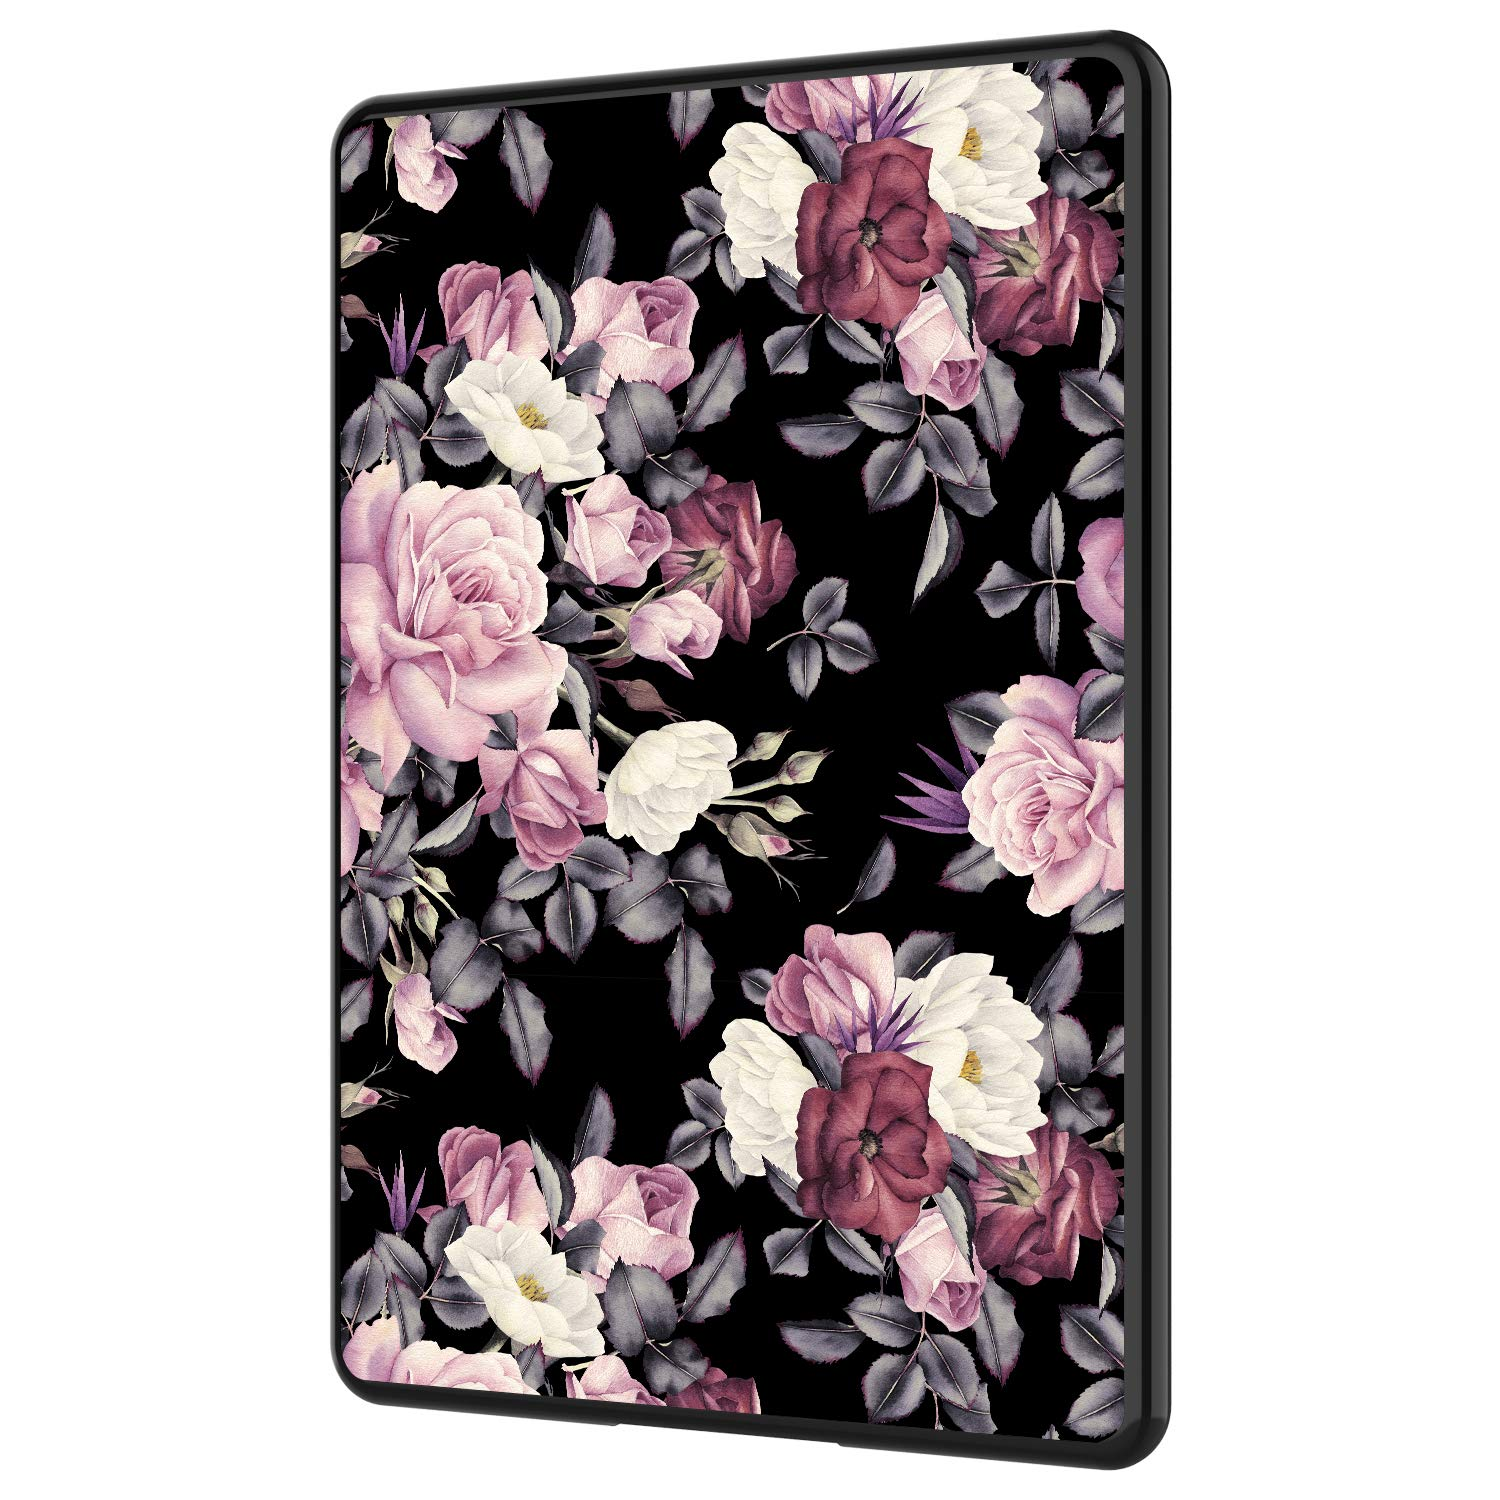 GCover Kindle Paperwhite Case, Slim Lightweight Scratch-Resistant Shockproof Flexible Soft Silicone Back Shell Cover Case for Amazon Kindle Paperwhite, Black - Pink Purple Floral